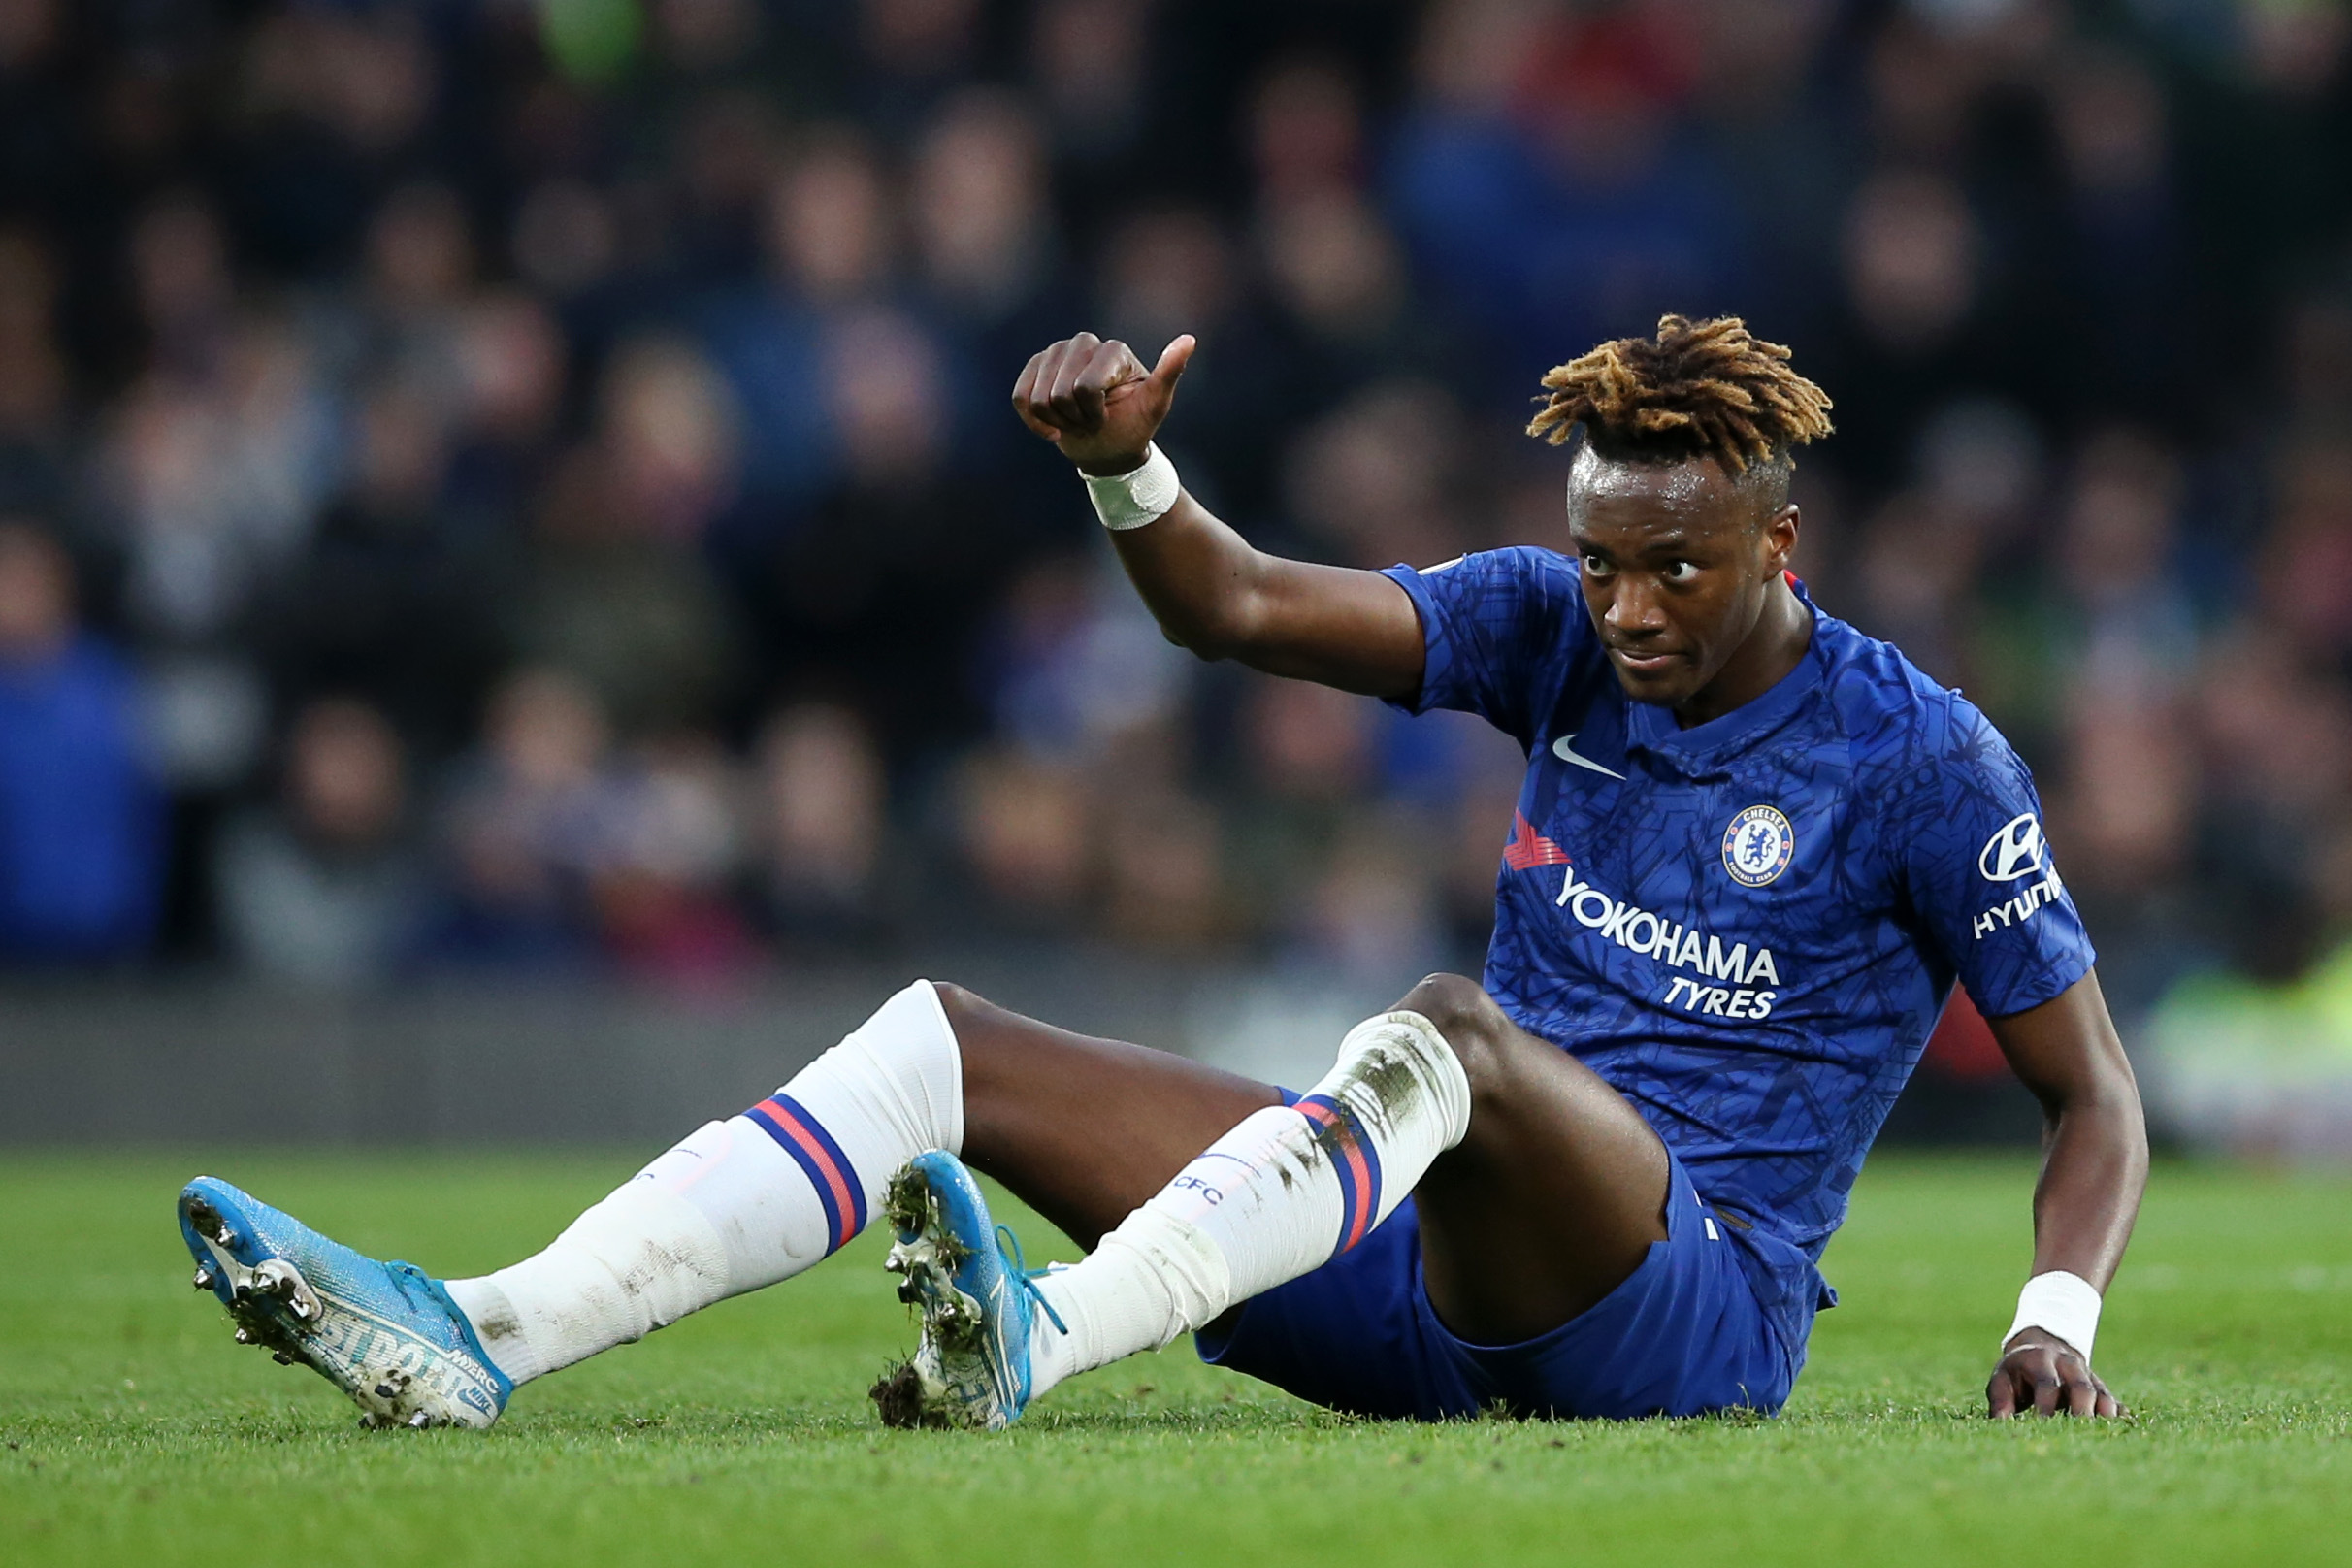 Abraham out injured again (Photo by Steve Bardens/Getty Images)